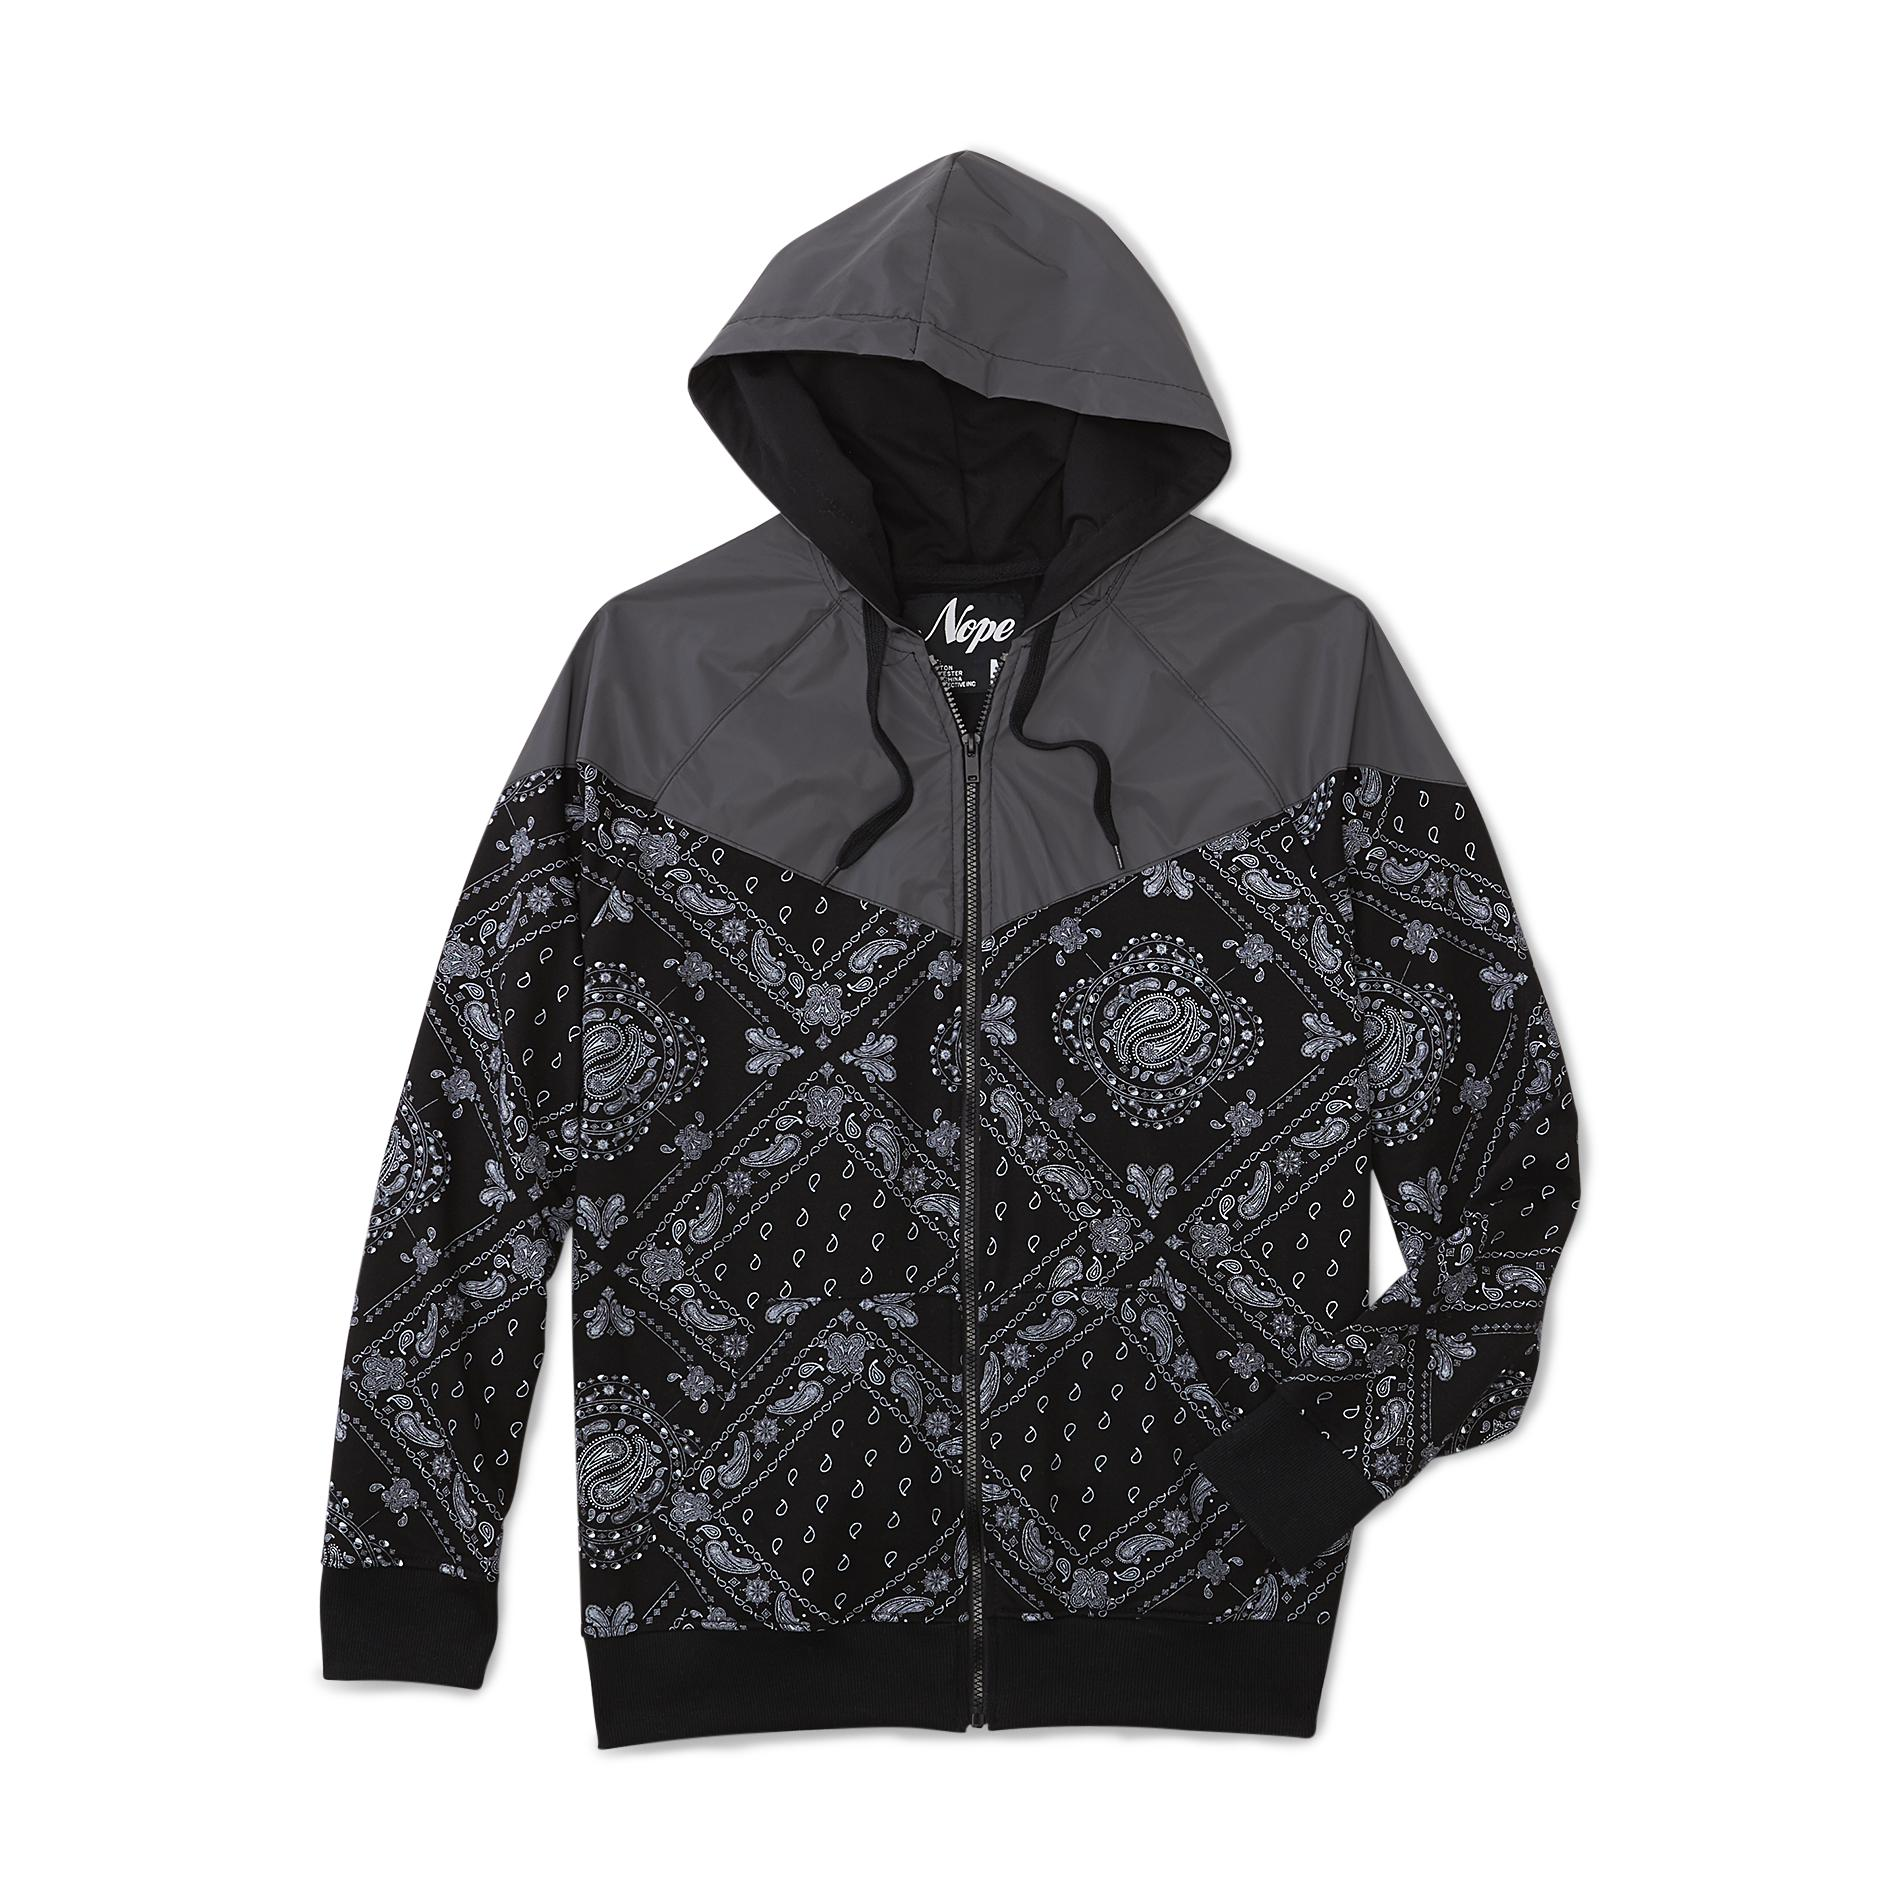 Nope Mens Windbreaker Hoodie Jacket Bandana